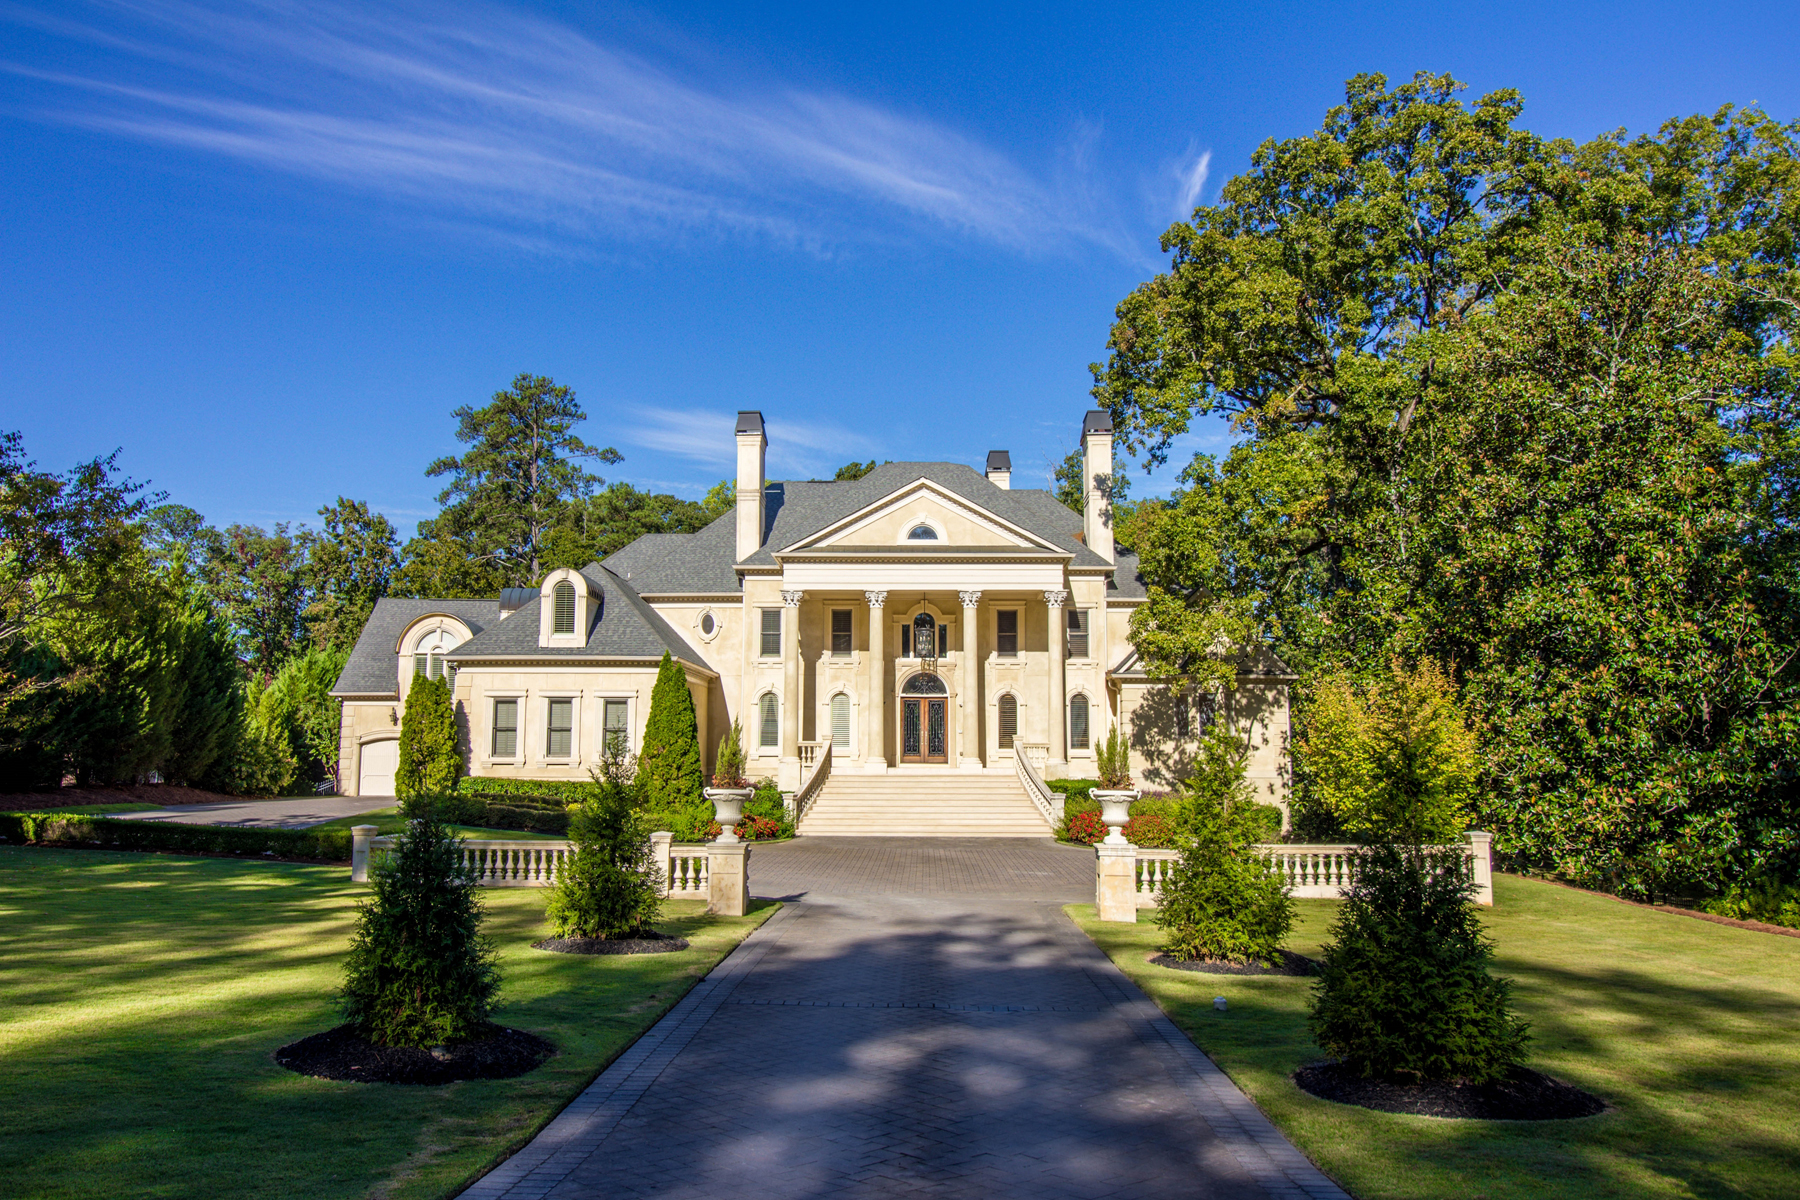 一戸建て のために 売買 アット Incomparable Neoclassical Estate In The Heart Of Buckhead 1495 Mount Paran Road NW Atlanta, ジョージア, 30327 アメリカ合衆国